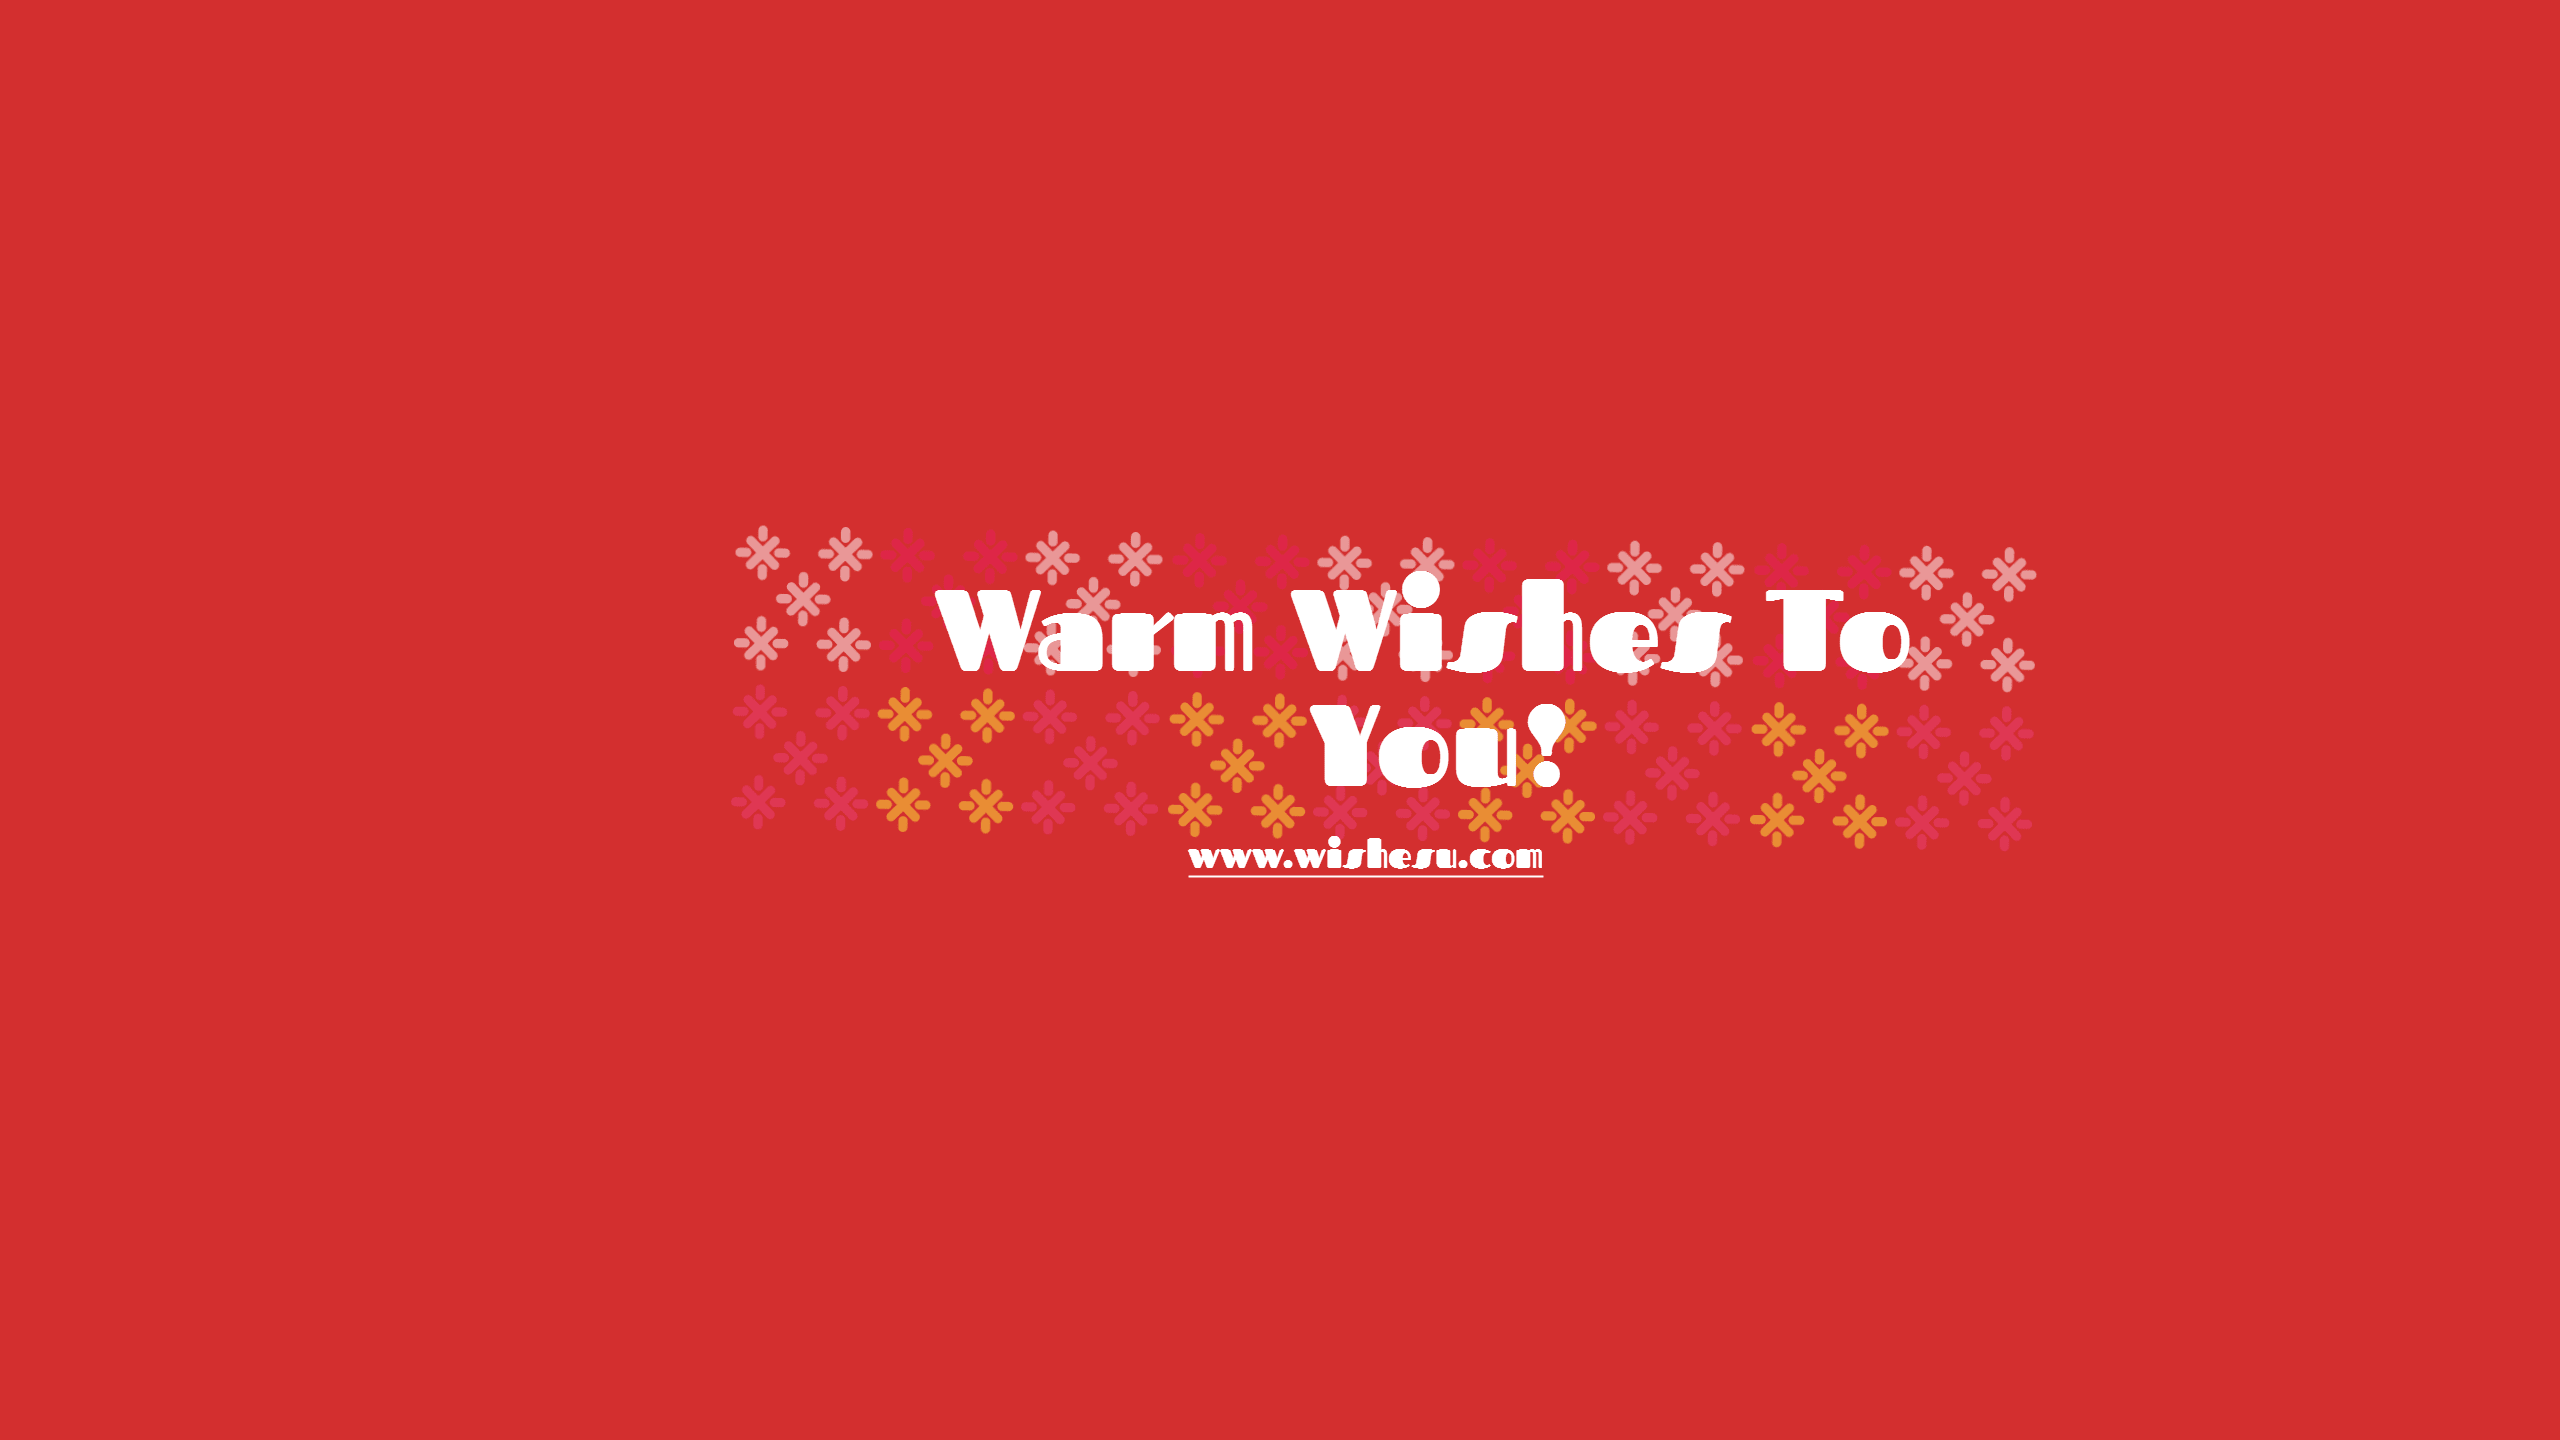 Christmas,                Anniversary,                Holiday,                Red,                 Free Image